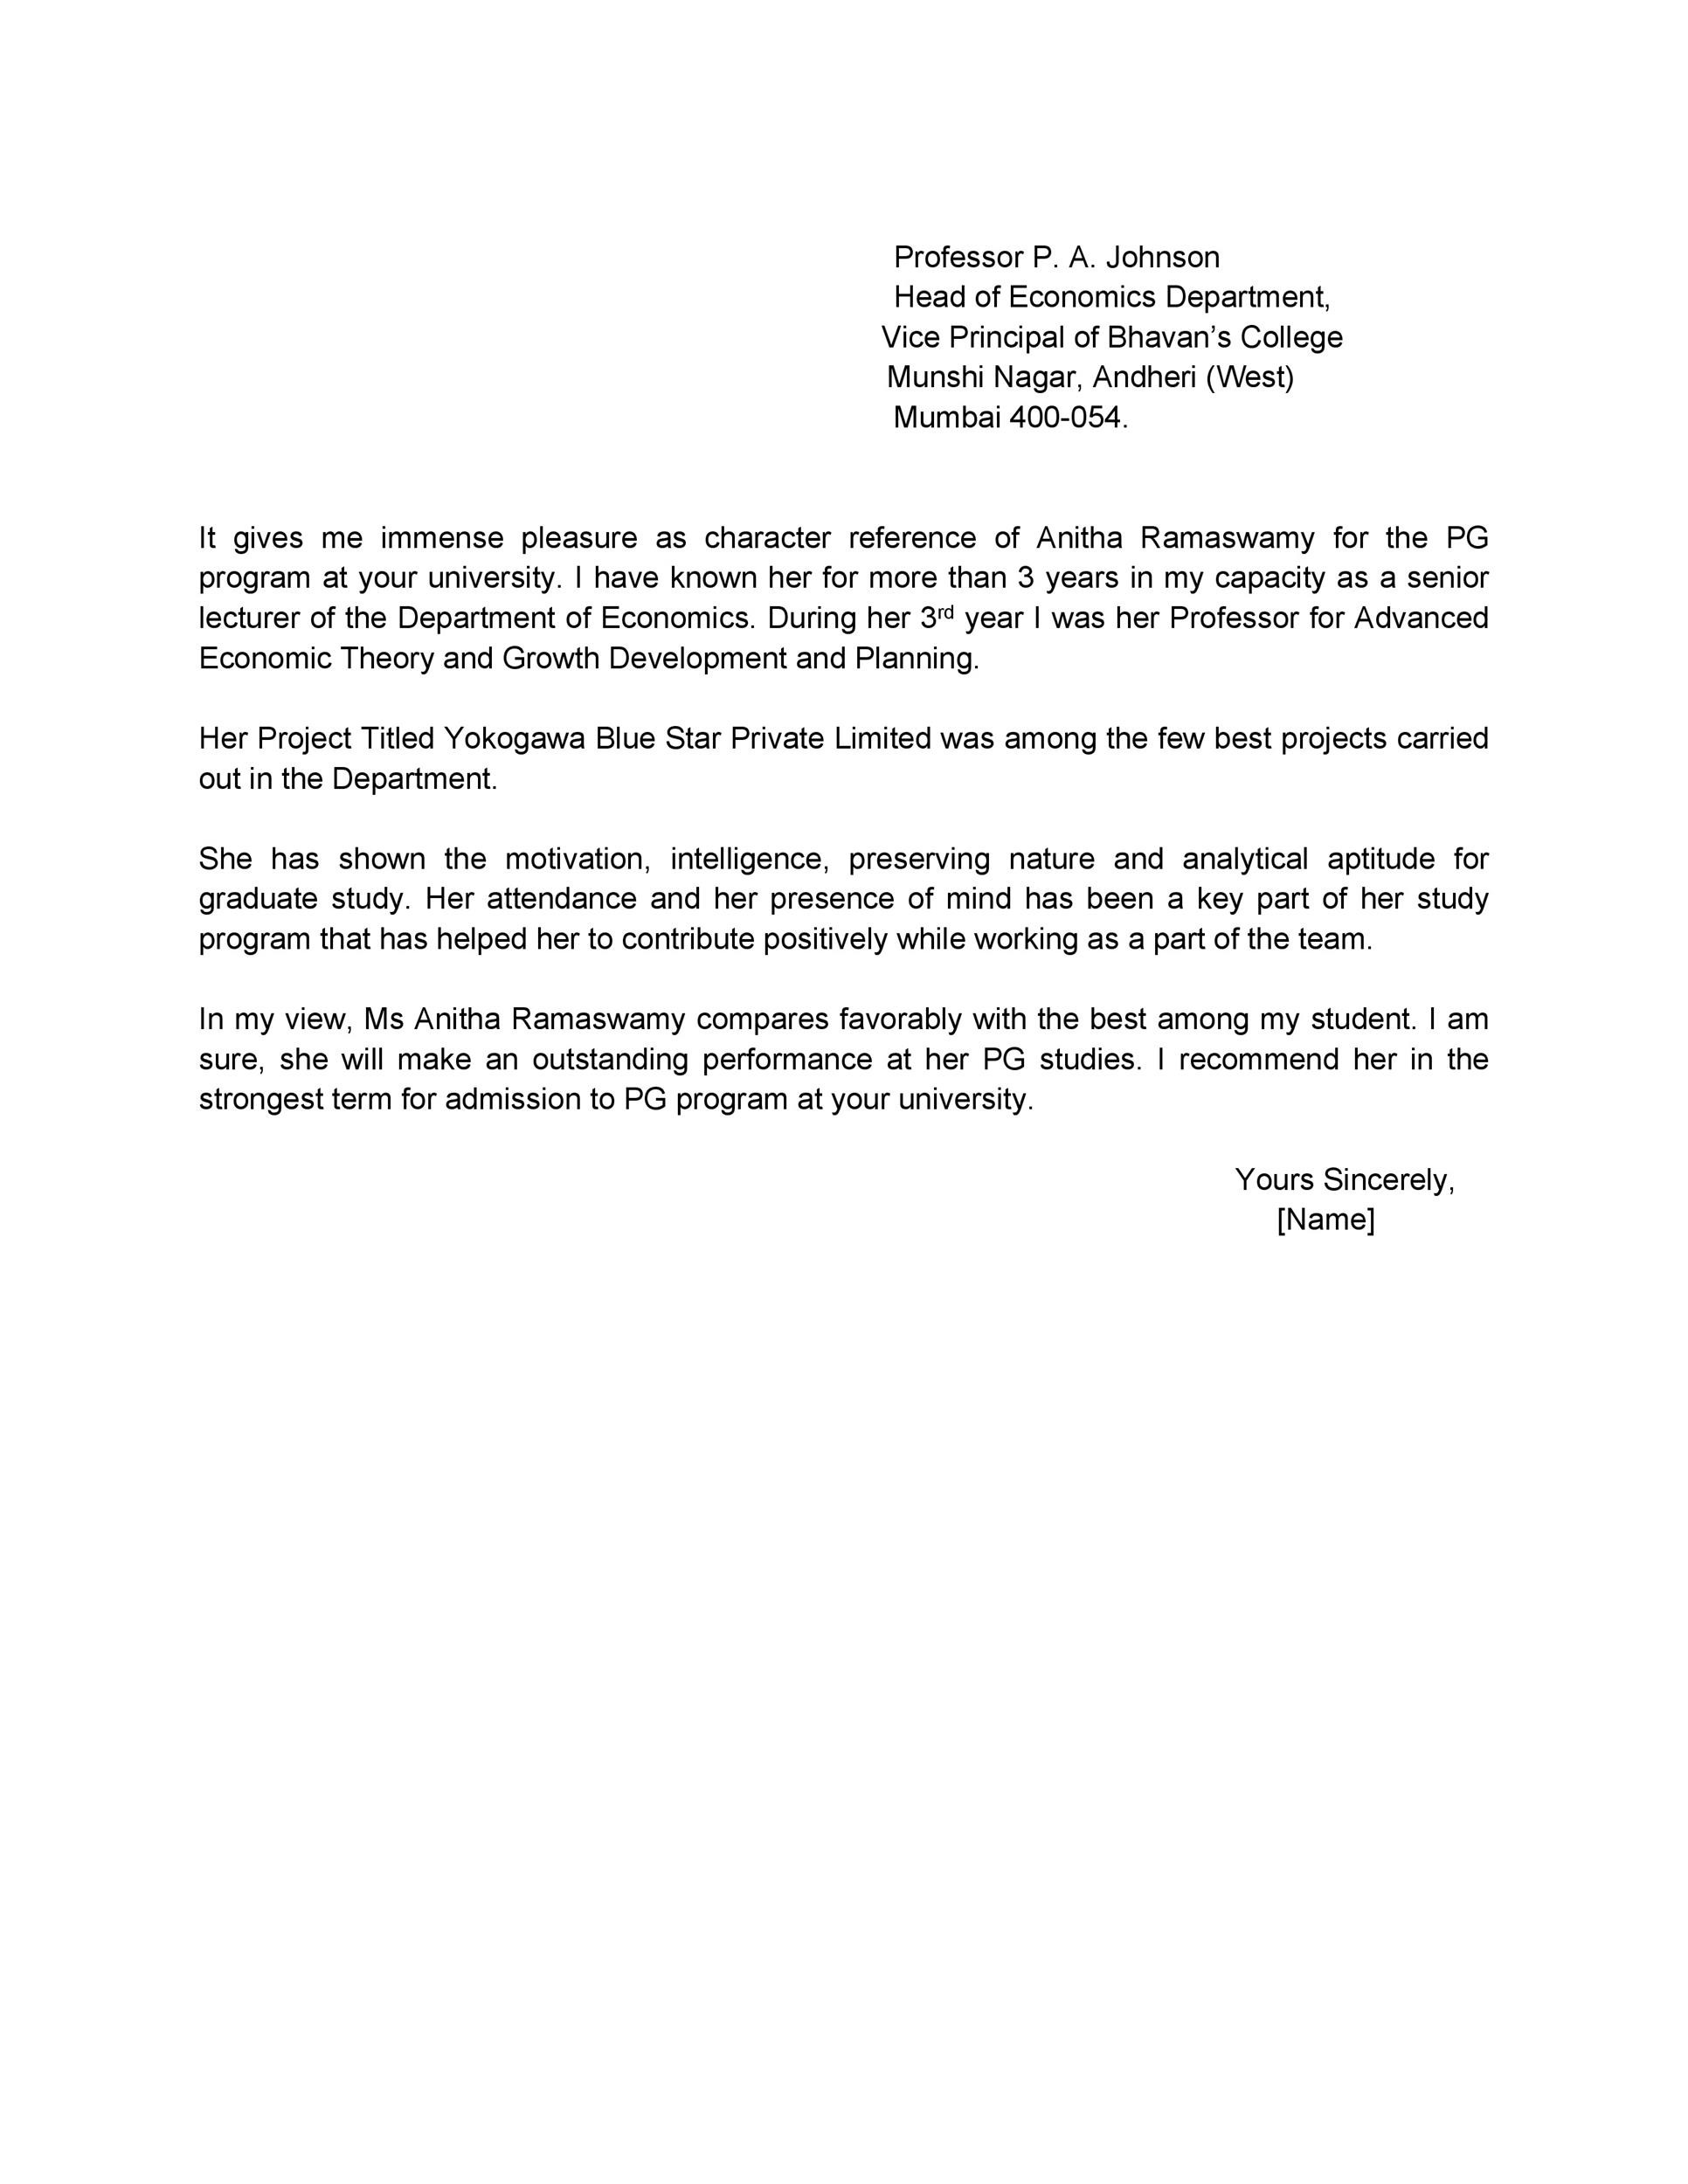 Printable Reference Letter 06  Personal Letter Of Recommendation Sample